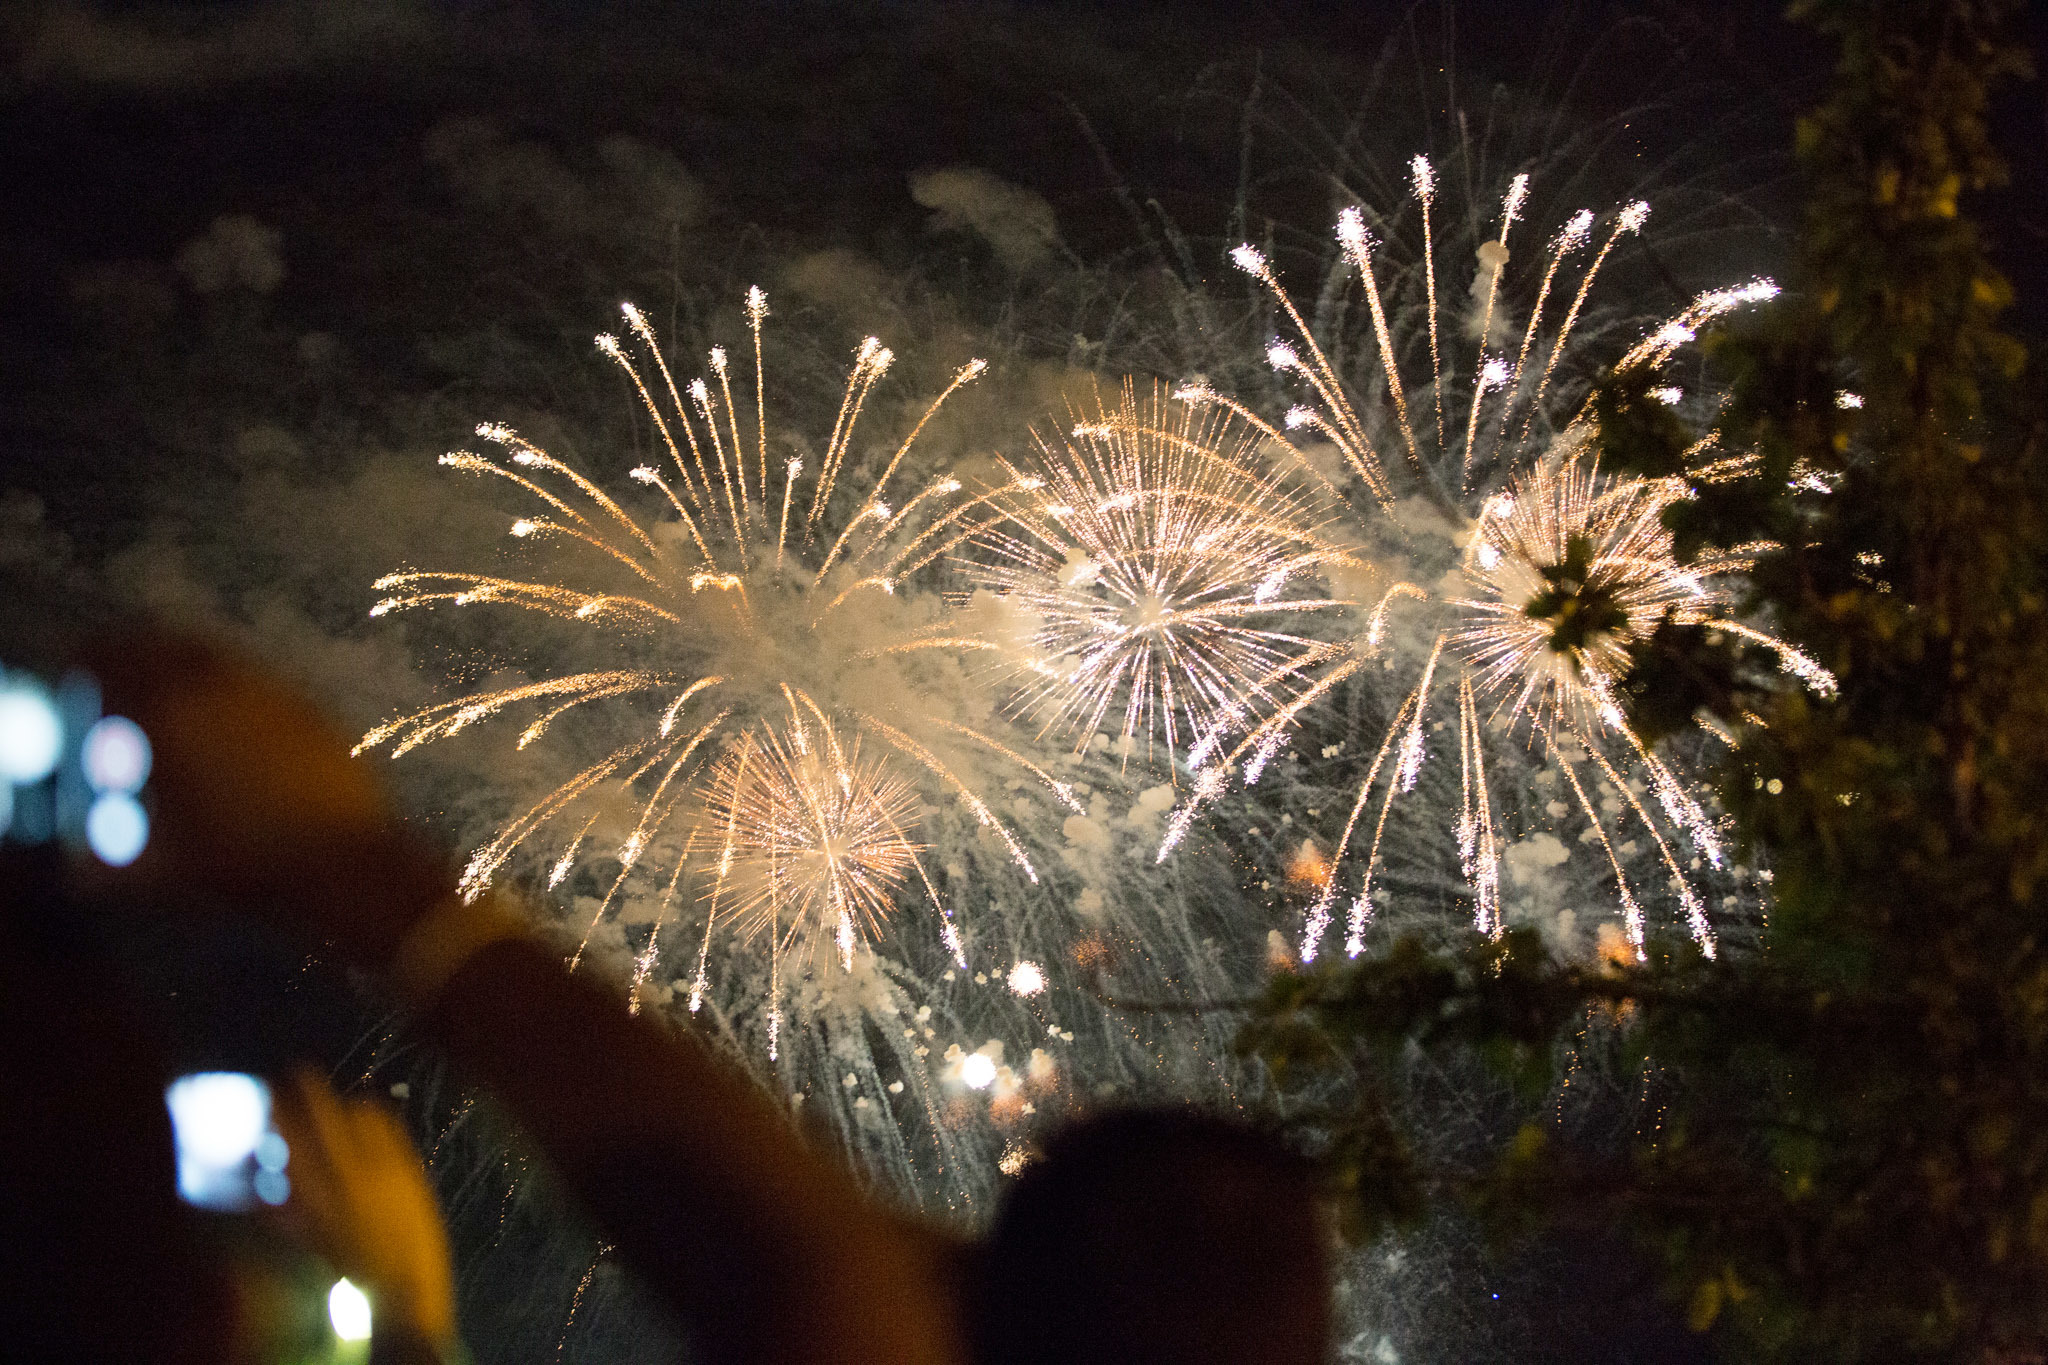 Chicago's best shots of Fourth of July fireworks